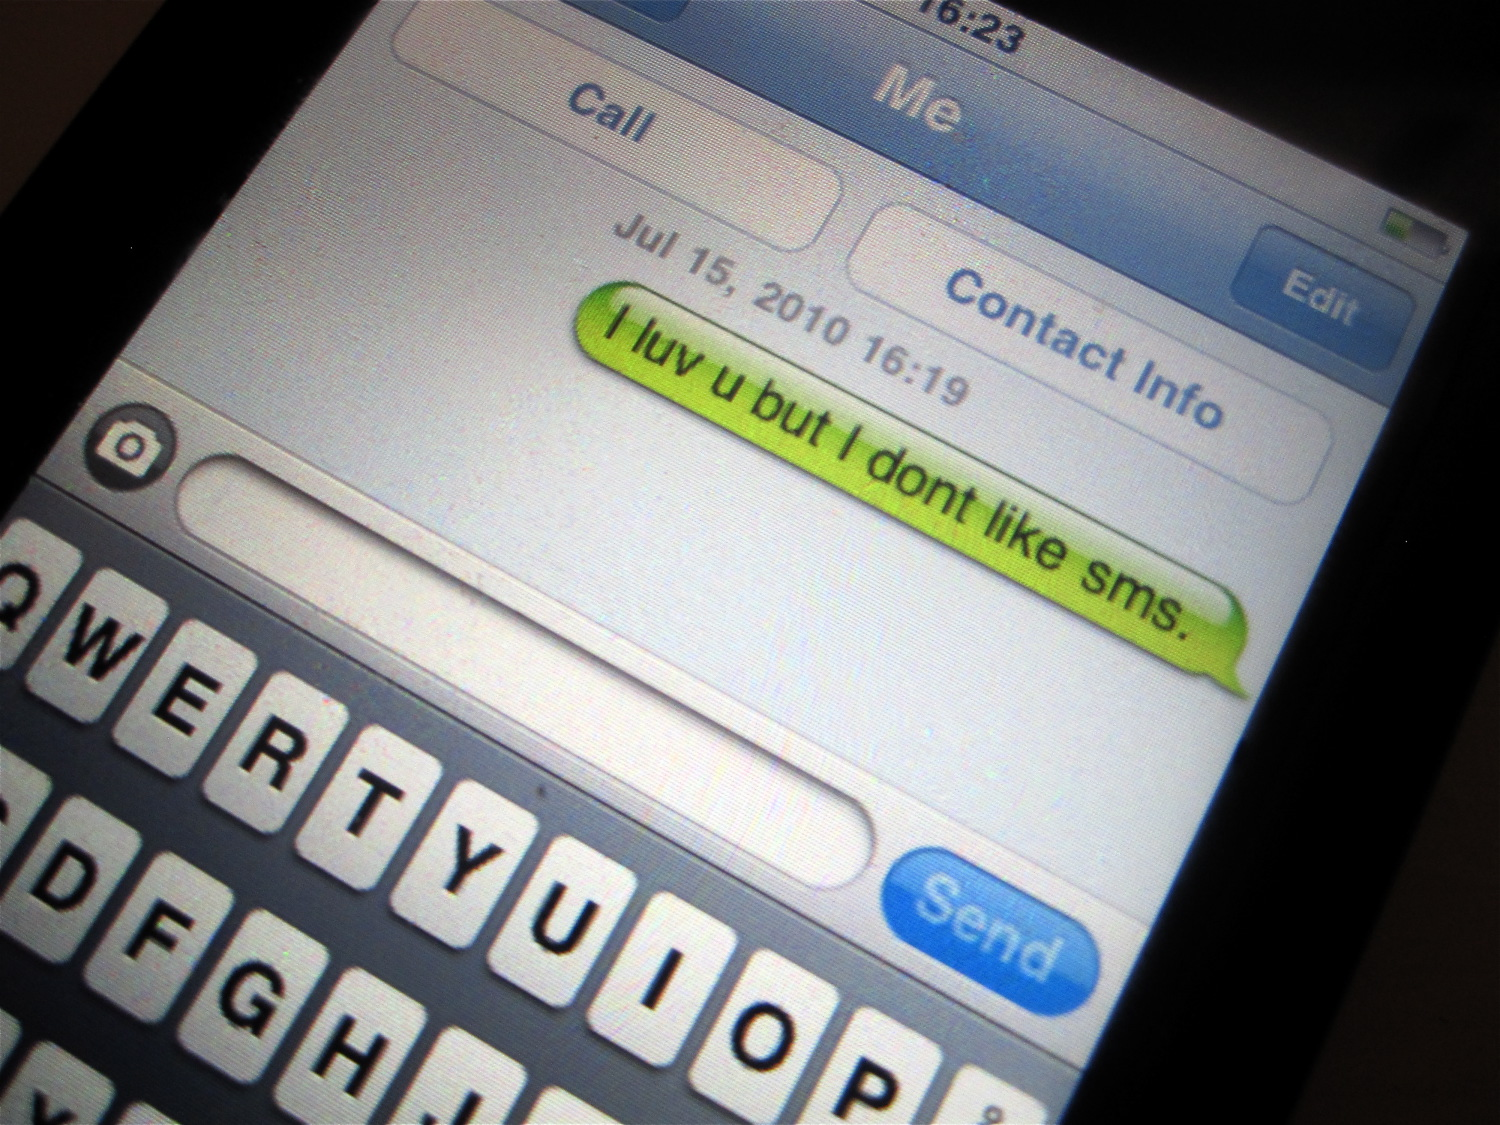 Best way to spy on text messages without installing software on a target phone